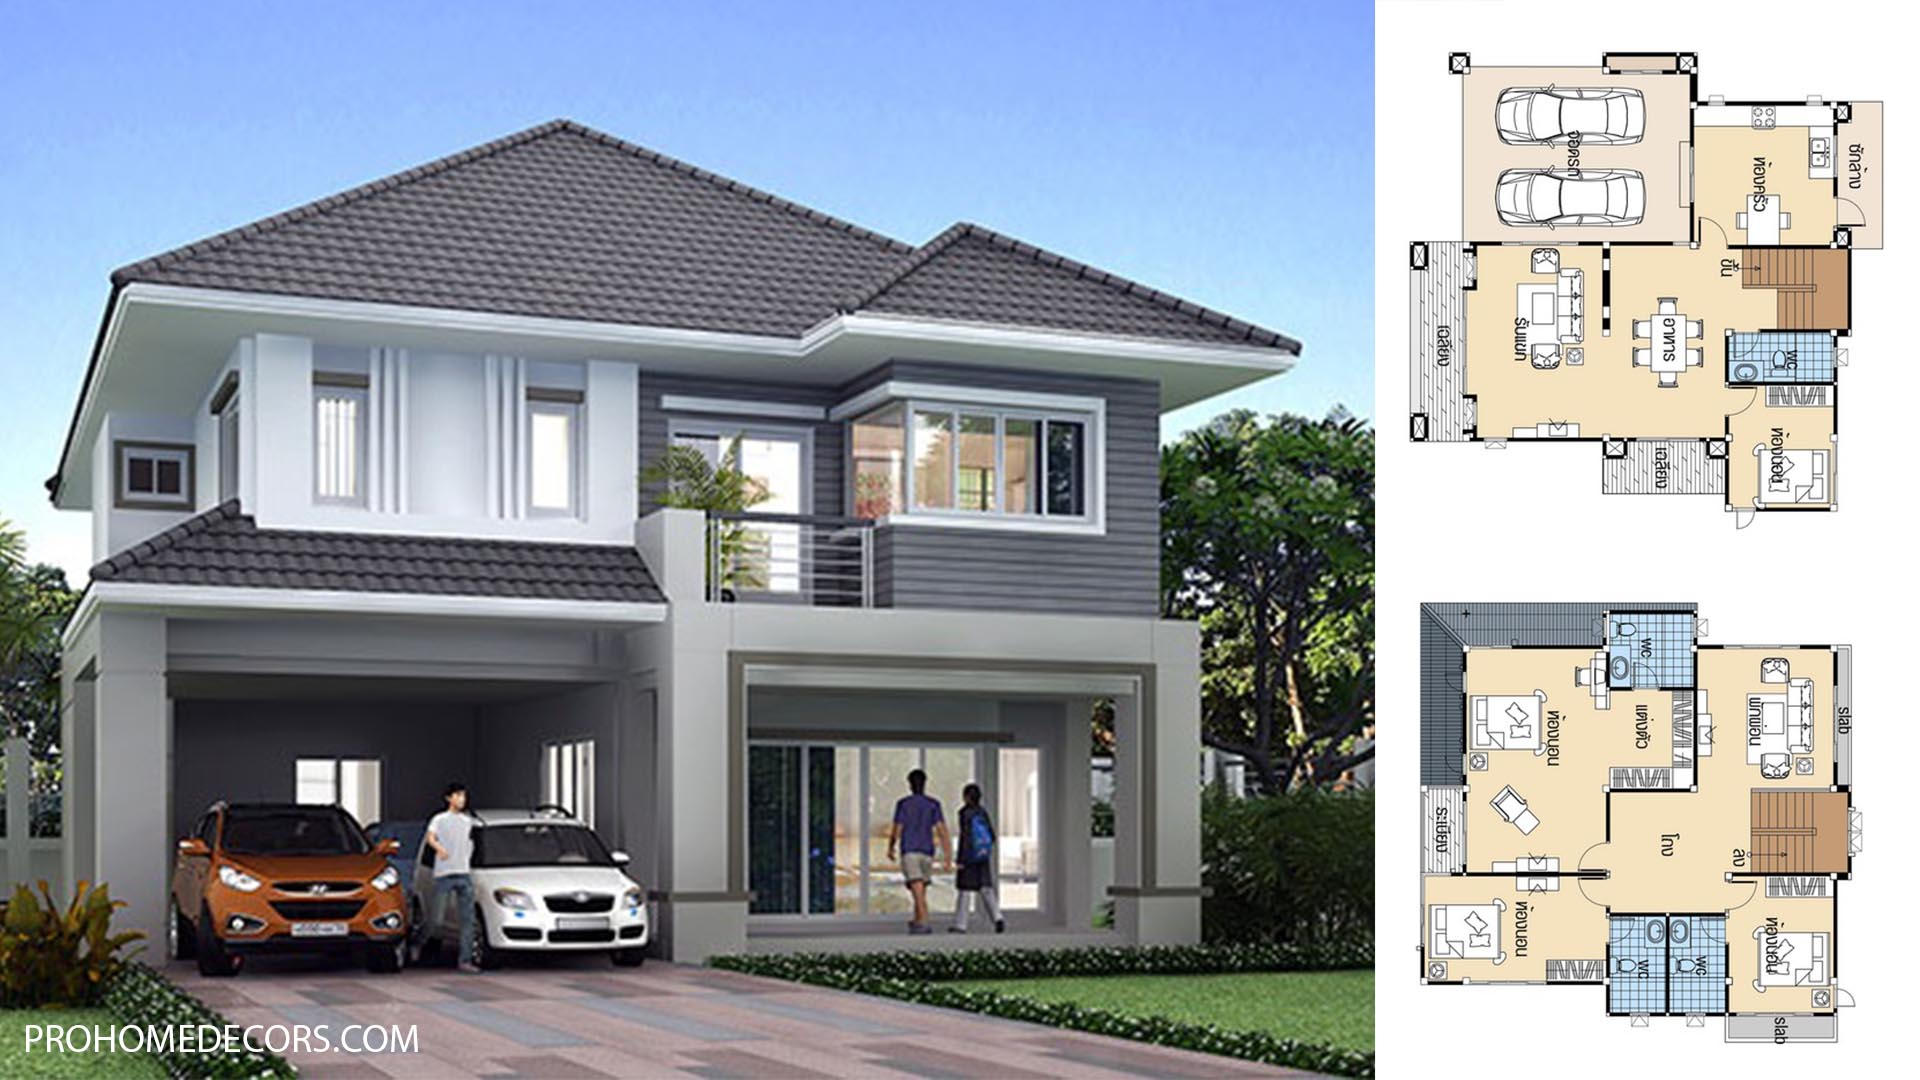 House design plans 12.5×12 with 4 Beds